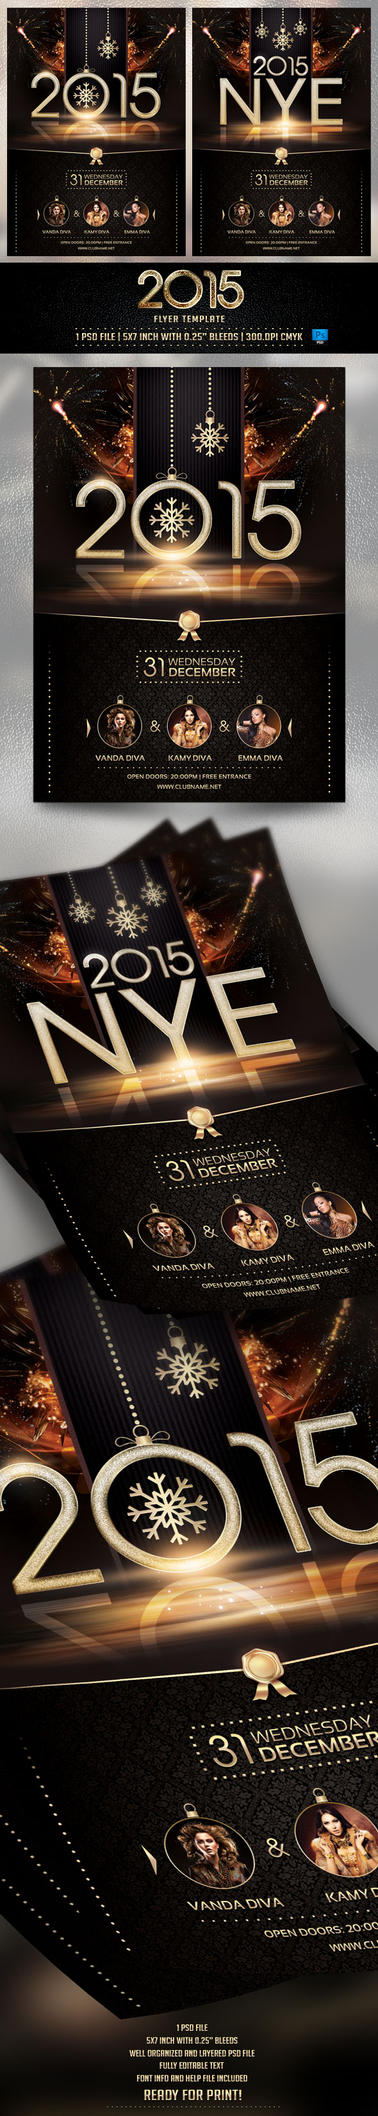 2015 NYE Flyer Template by BriellDesign